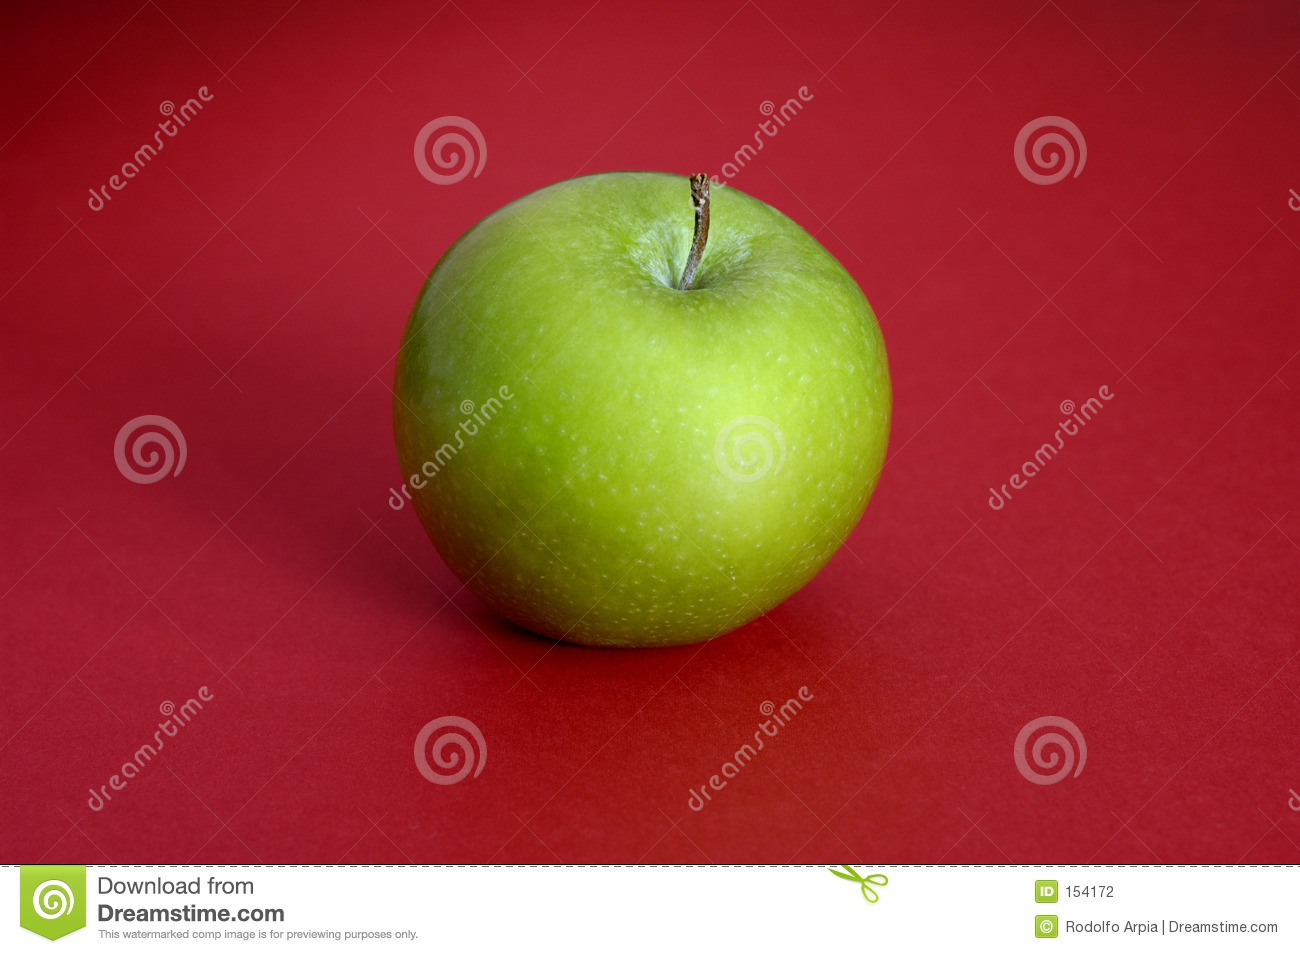 Green apple on red background